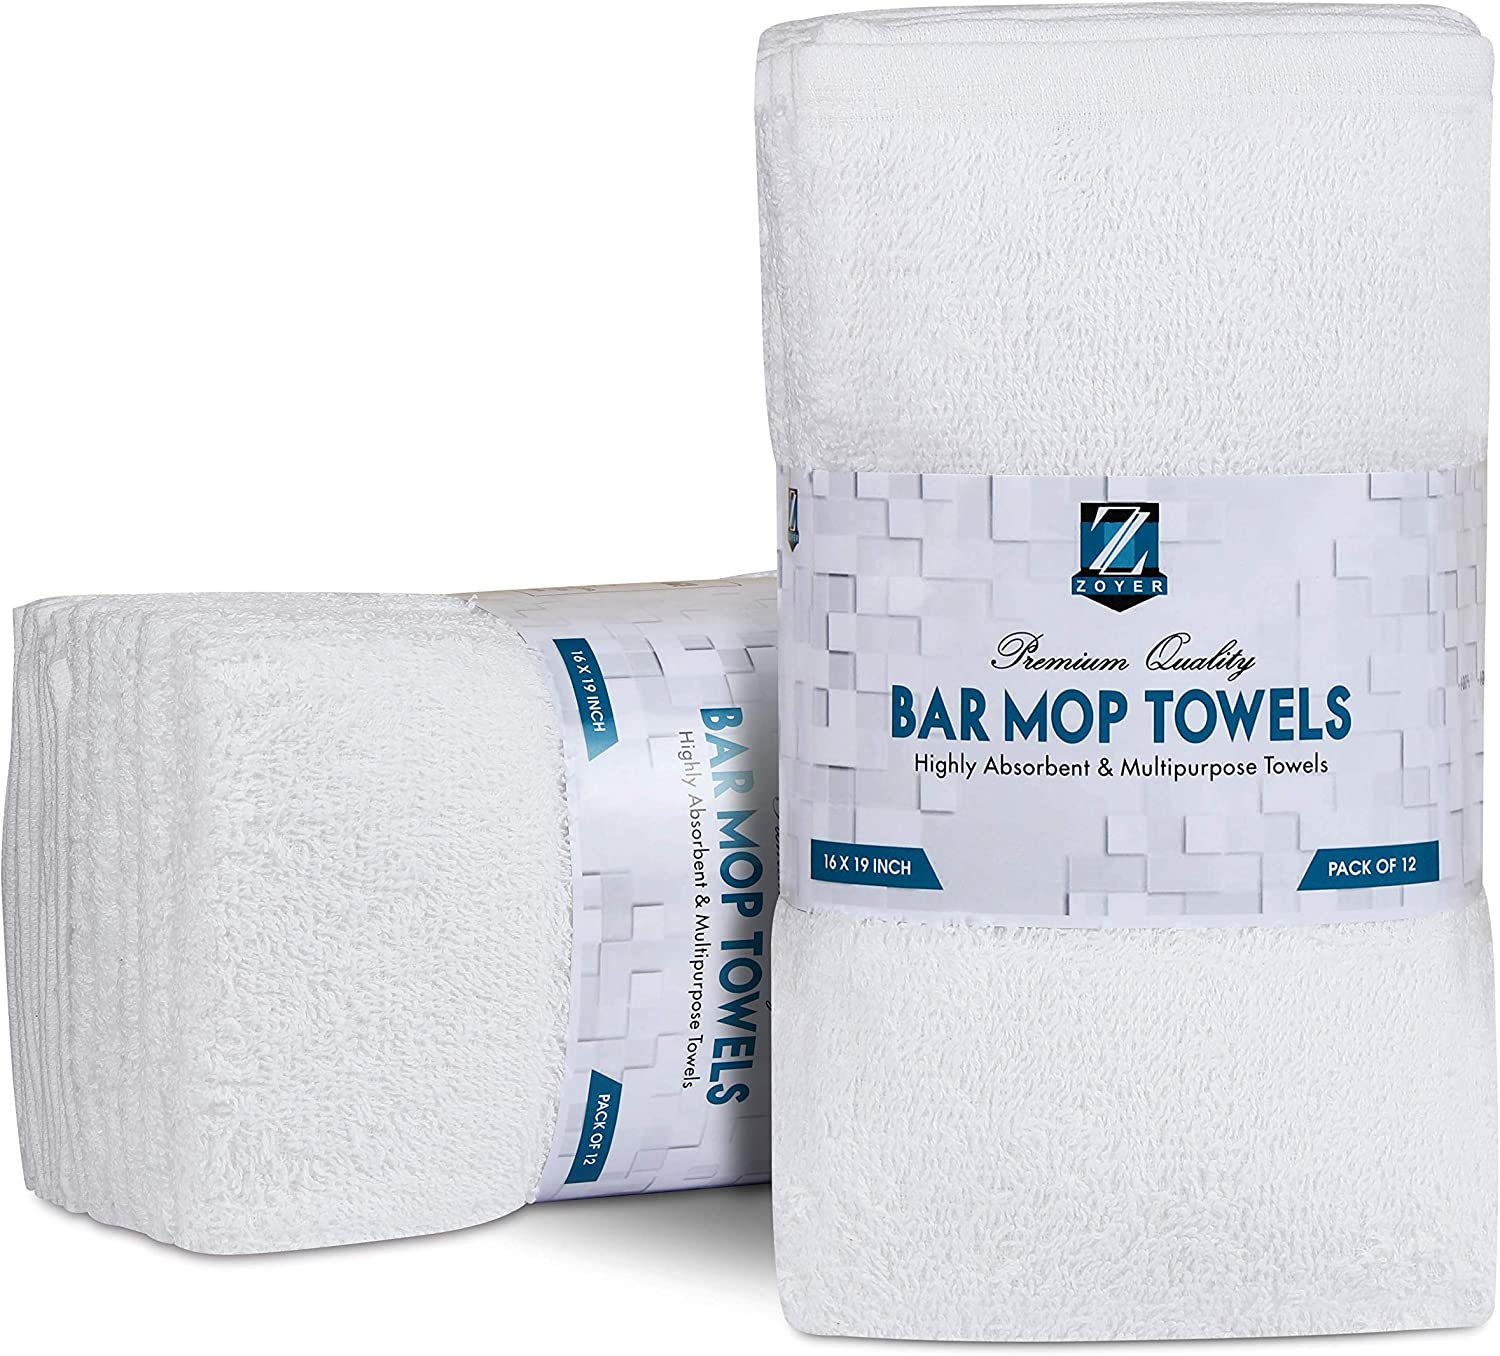 Zoyer Bar Mops Kitchen Towels 12 Pack - Pure Cotton Kitchen Towels Super Absorbent (16 X 19 Inches, White)